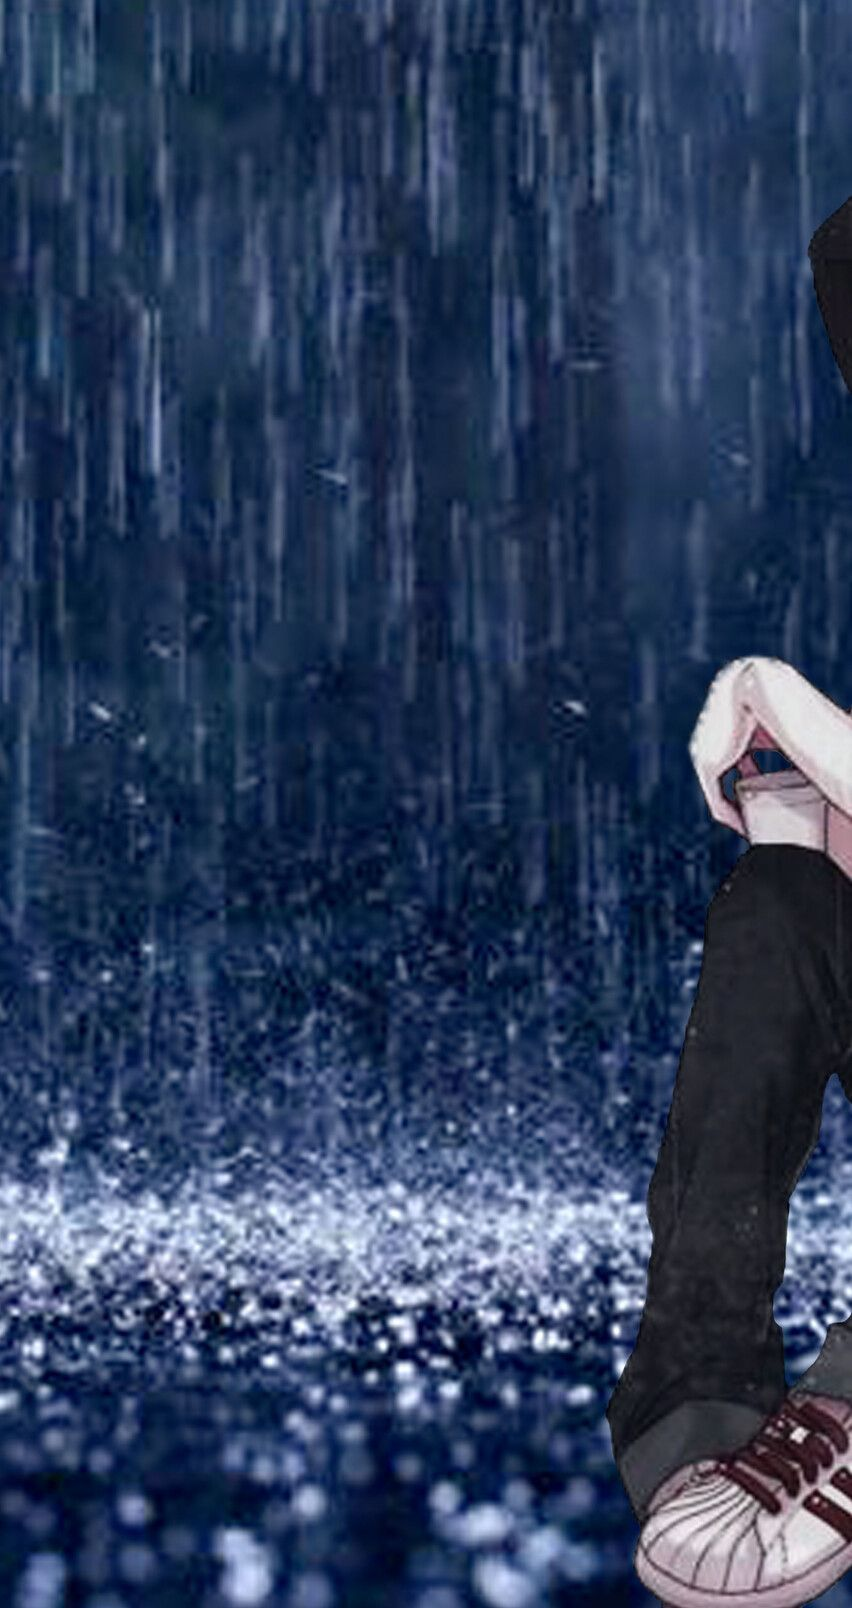 Download Wallpaper 1920x1080 Girl Umbrella Anime Rain Street